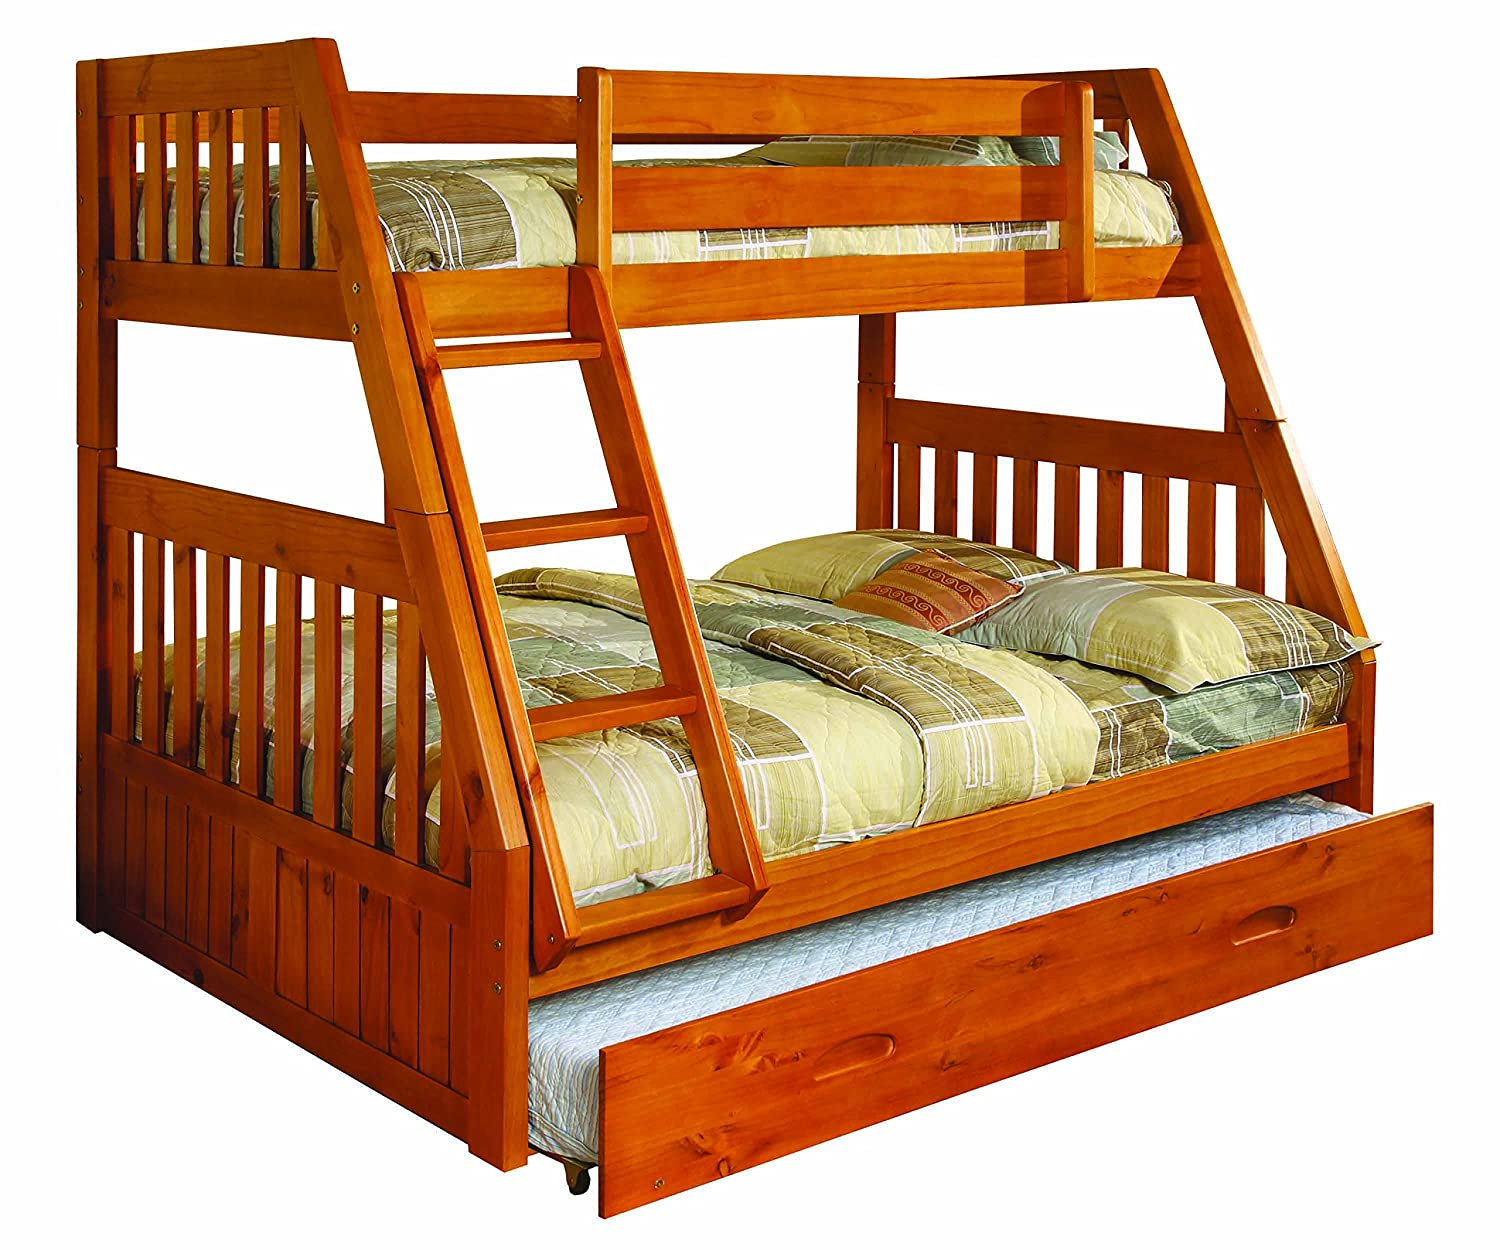 Toddler bunk beds and loft beds browse read reviews discover - Amazon Com Discovery World Furniture Twin Over Full Bunk Bed With Twin Trundle Honey Kitchen Dining